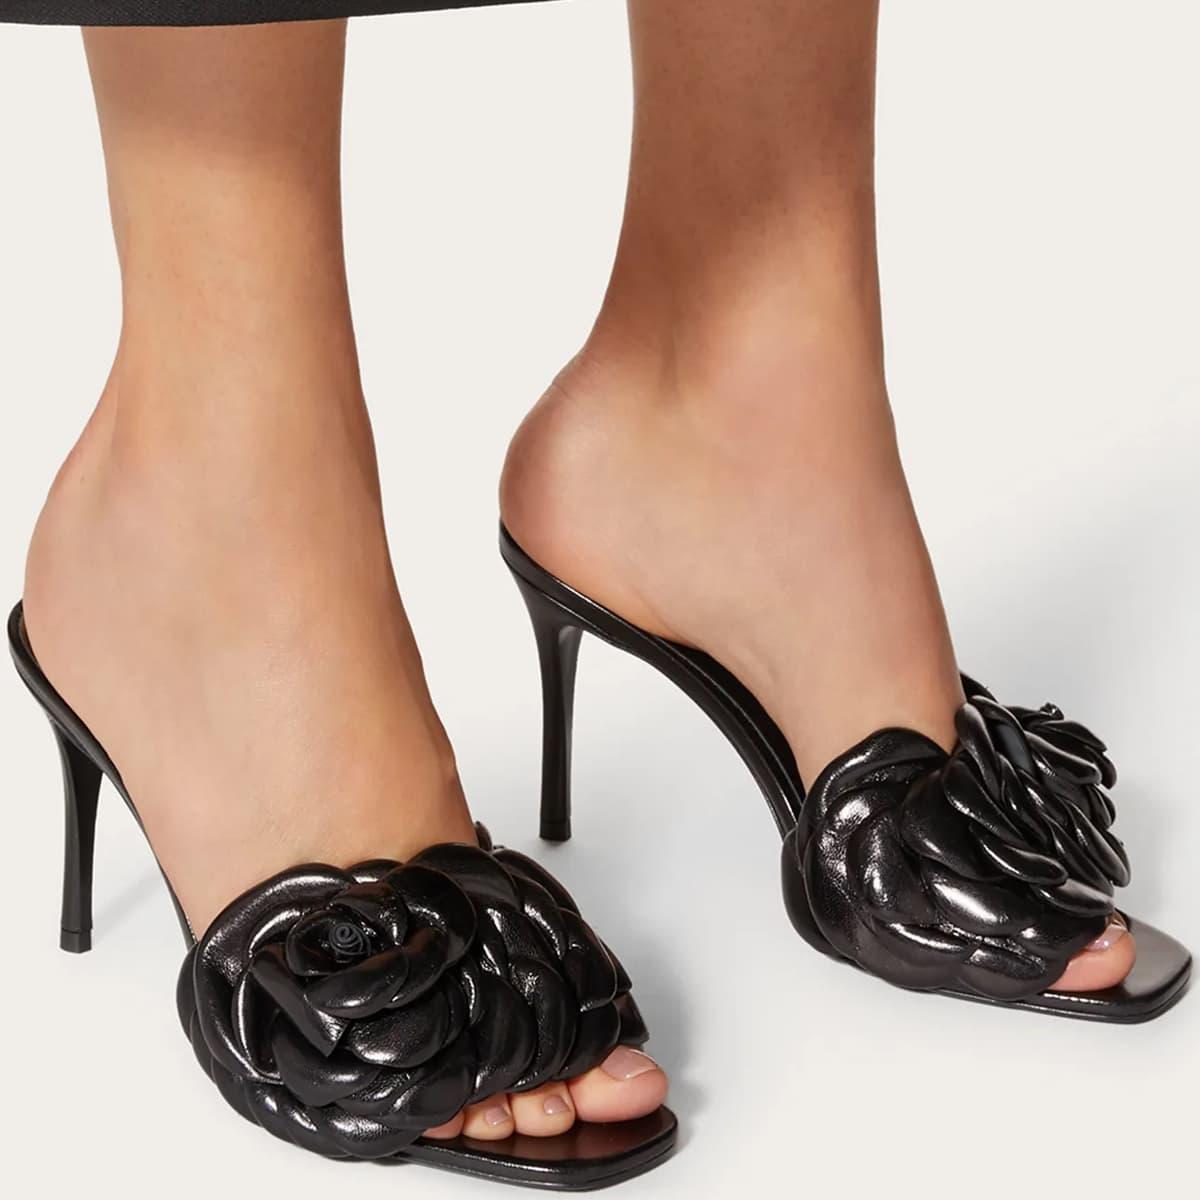 Valentino Garavani's black Atelier 03 rose edition sandals with leather petals creating a 3D rose detail